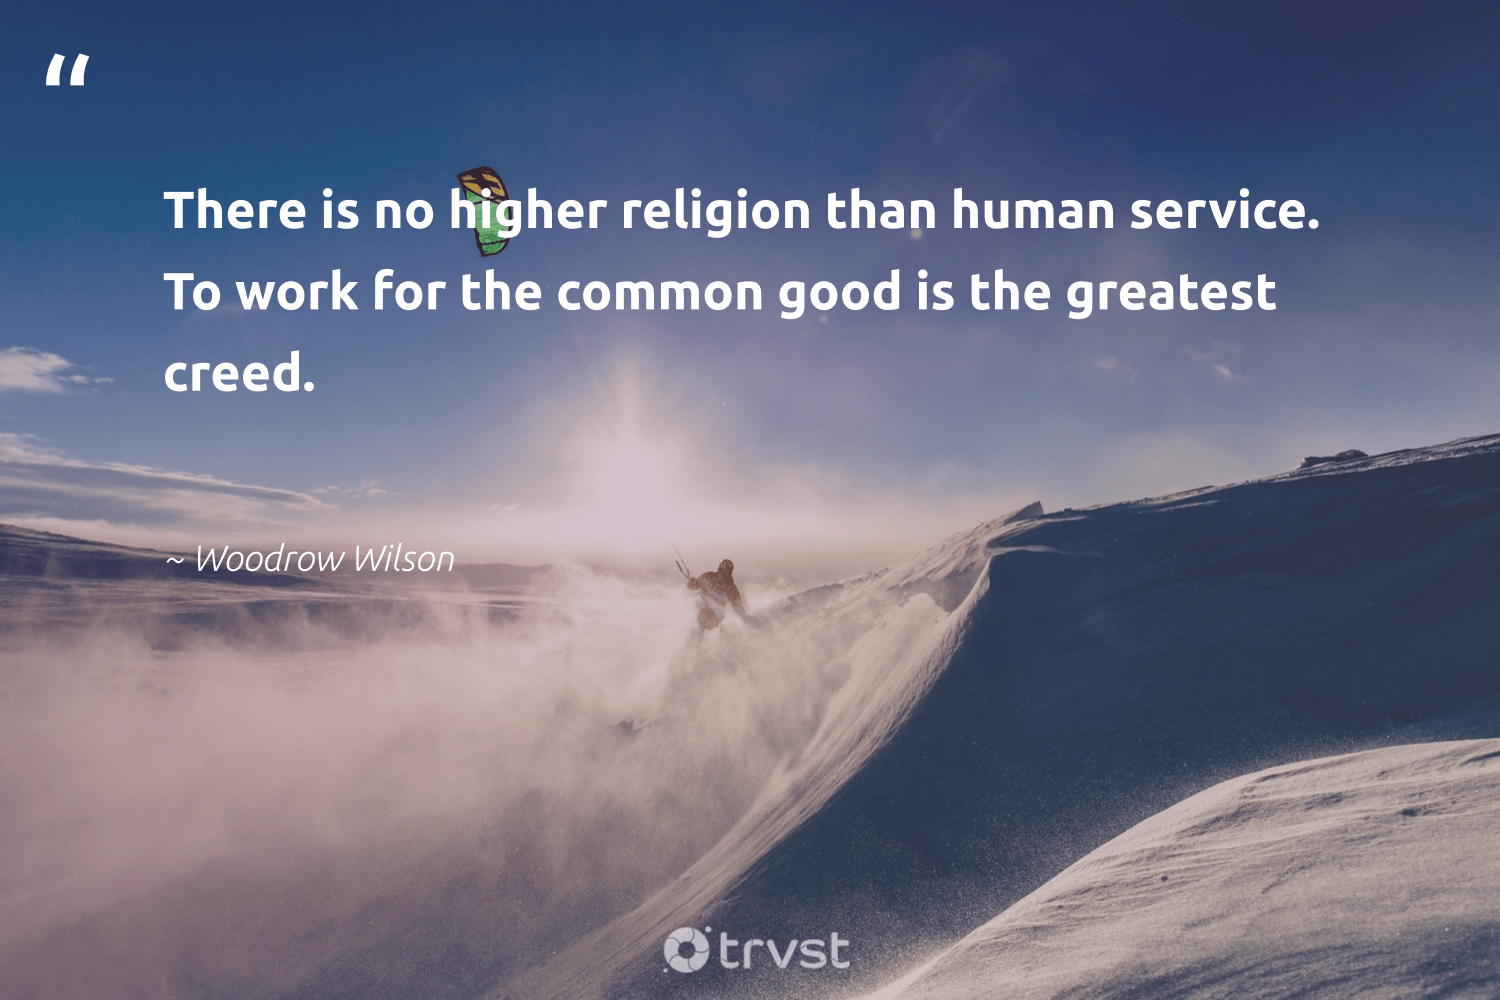 """There is no higher religion than human service. To work for the common good is the greatest creed.""  - Woodrow Wilson #trvst #quotes #futureofwork #collectiveaction #begreat #thinkgreen #softskills #beinspired #nevergiveup #bethechange #socialimpact #dotherightthing"